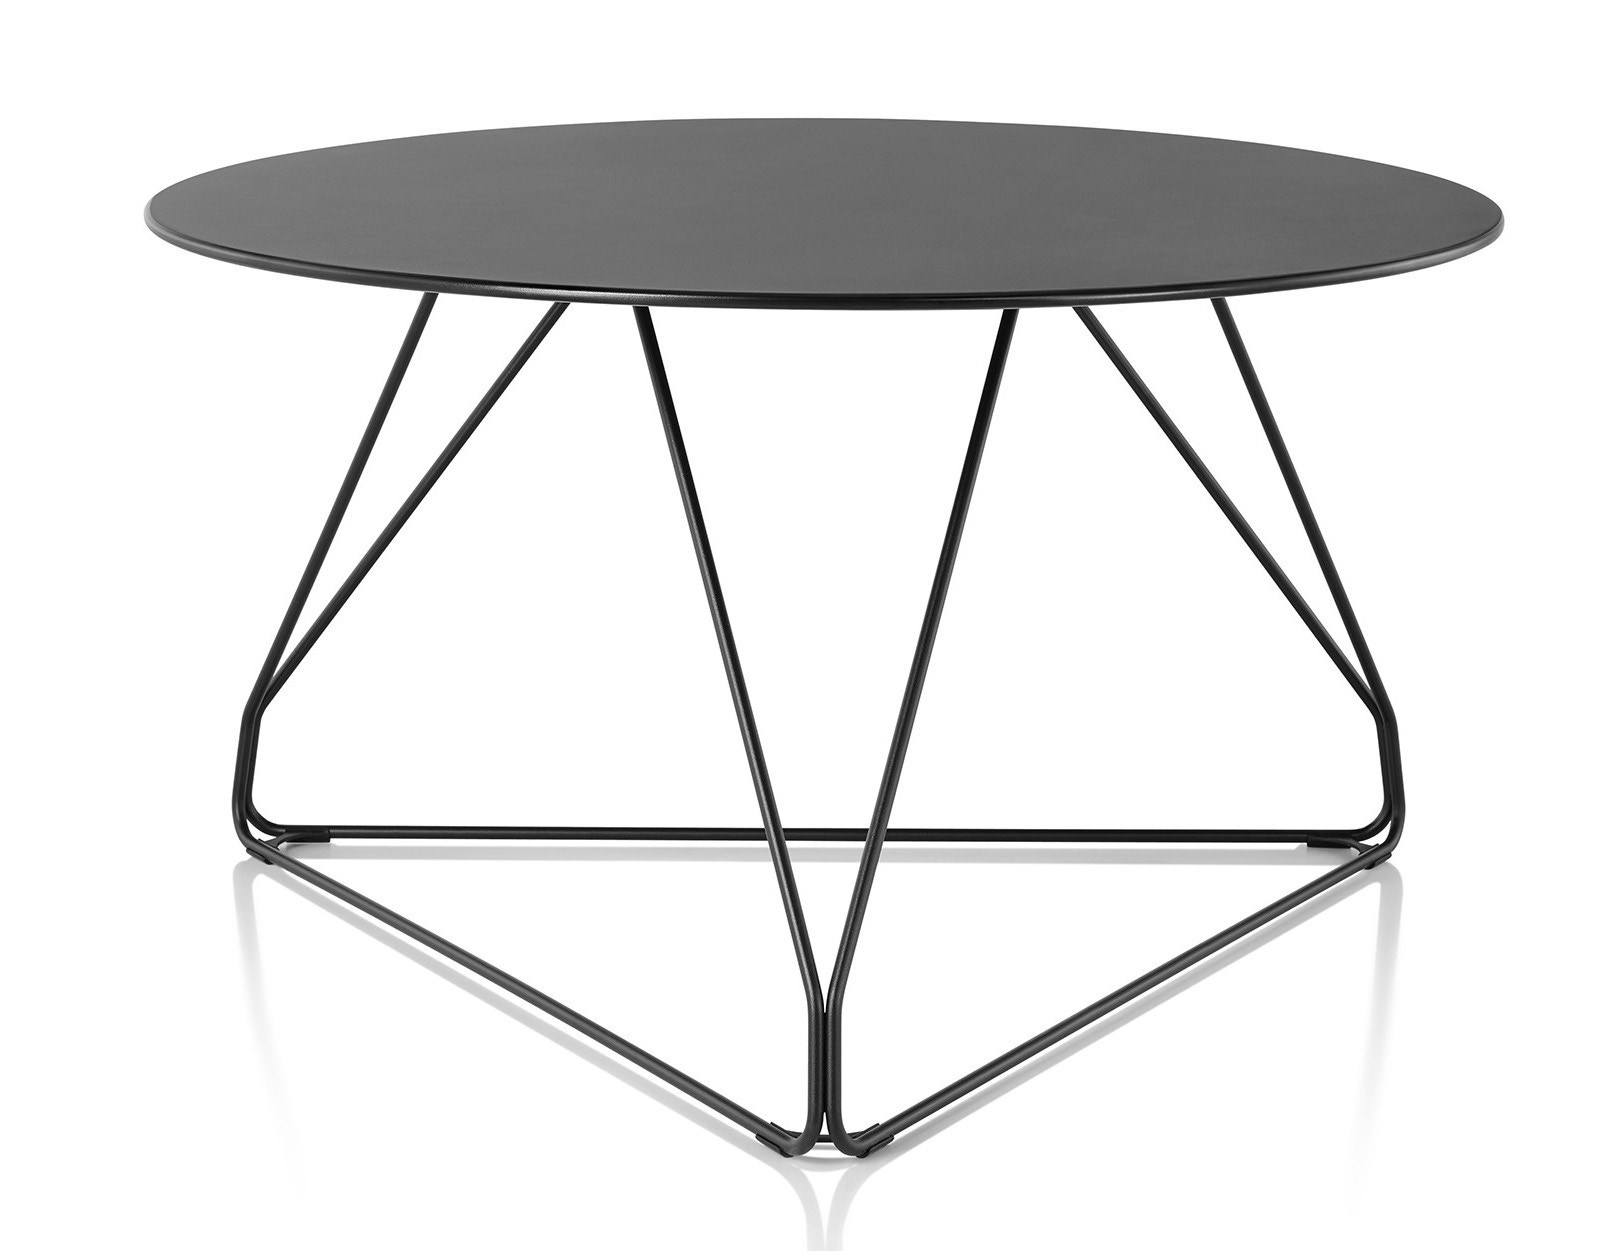 Charmant Herman Miller Polygon Wire Table   GR Shop Canada